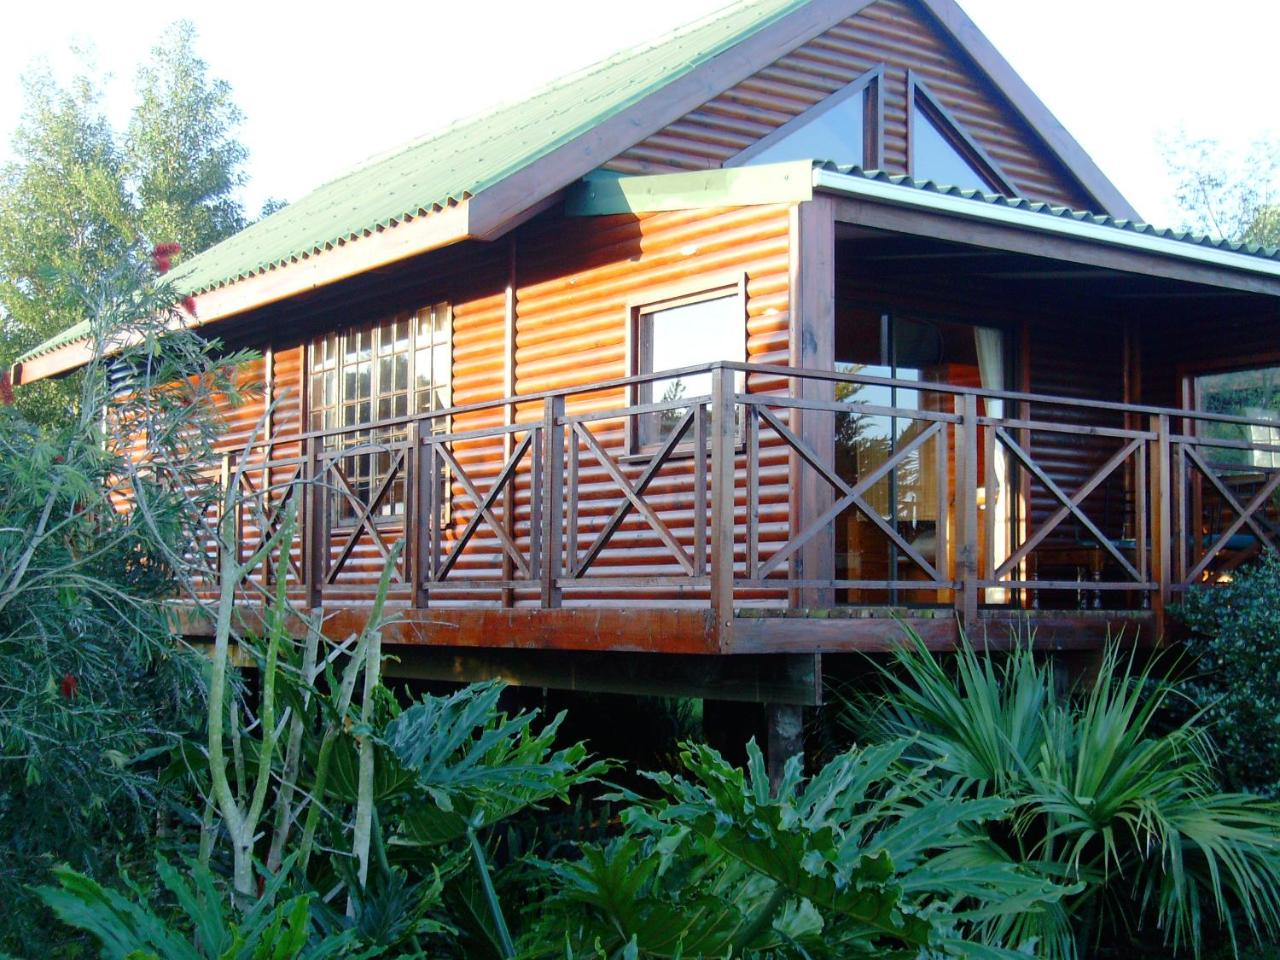 Vacation Hub International - VHI - Travel Club - Misty Mountain Reserve Lodge and Self Catering Chalets